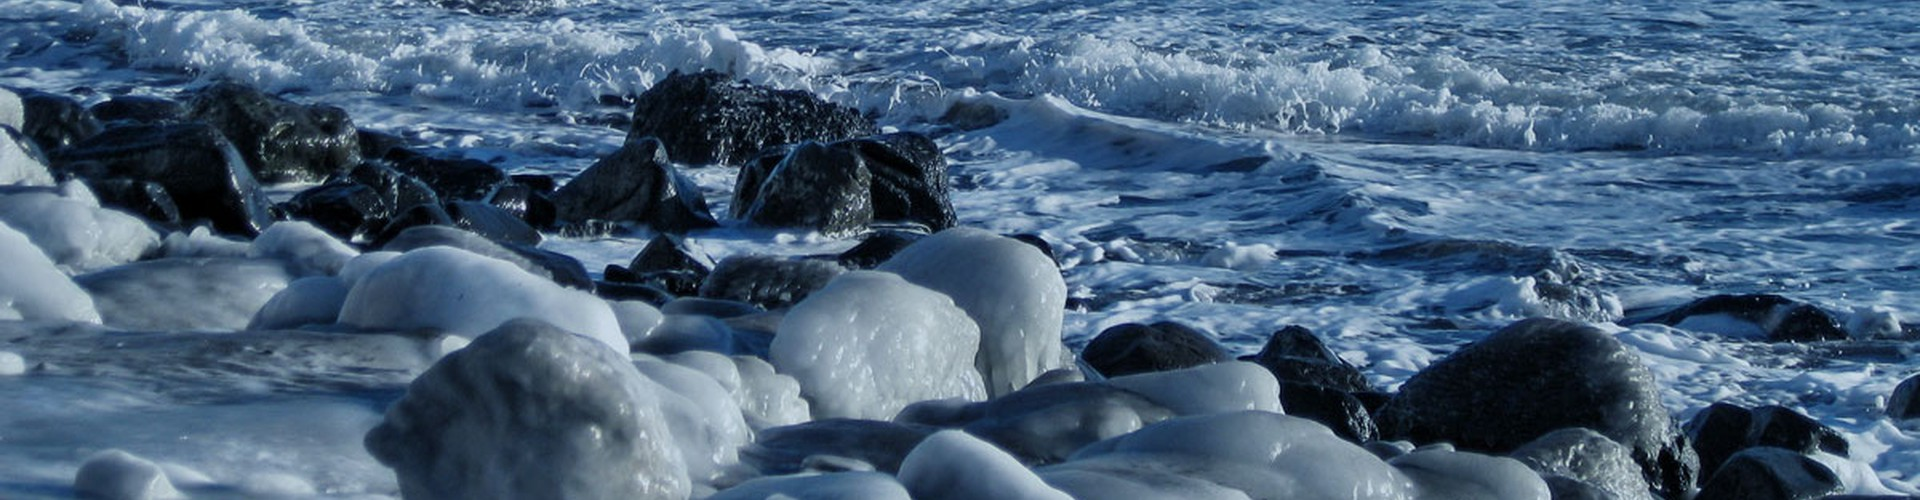 Winter shore (Credit: Dmitry Savelyev, distributed via imaggeo.egu.eu)